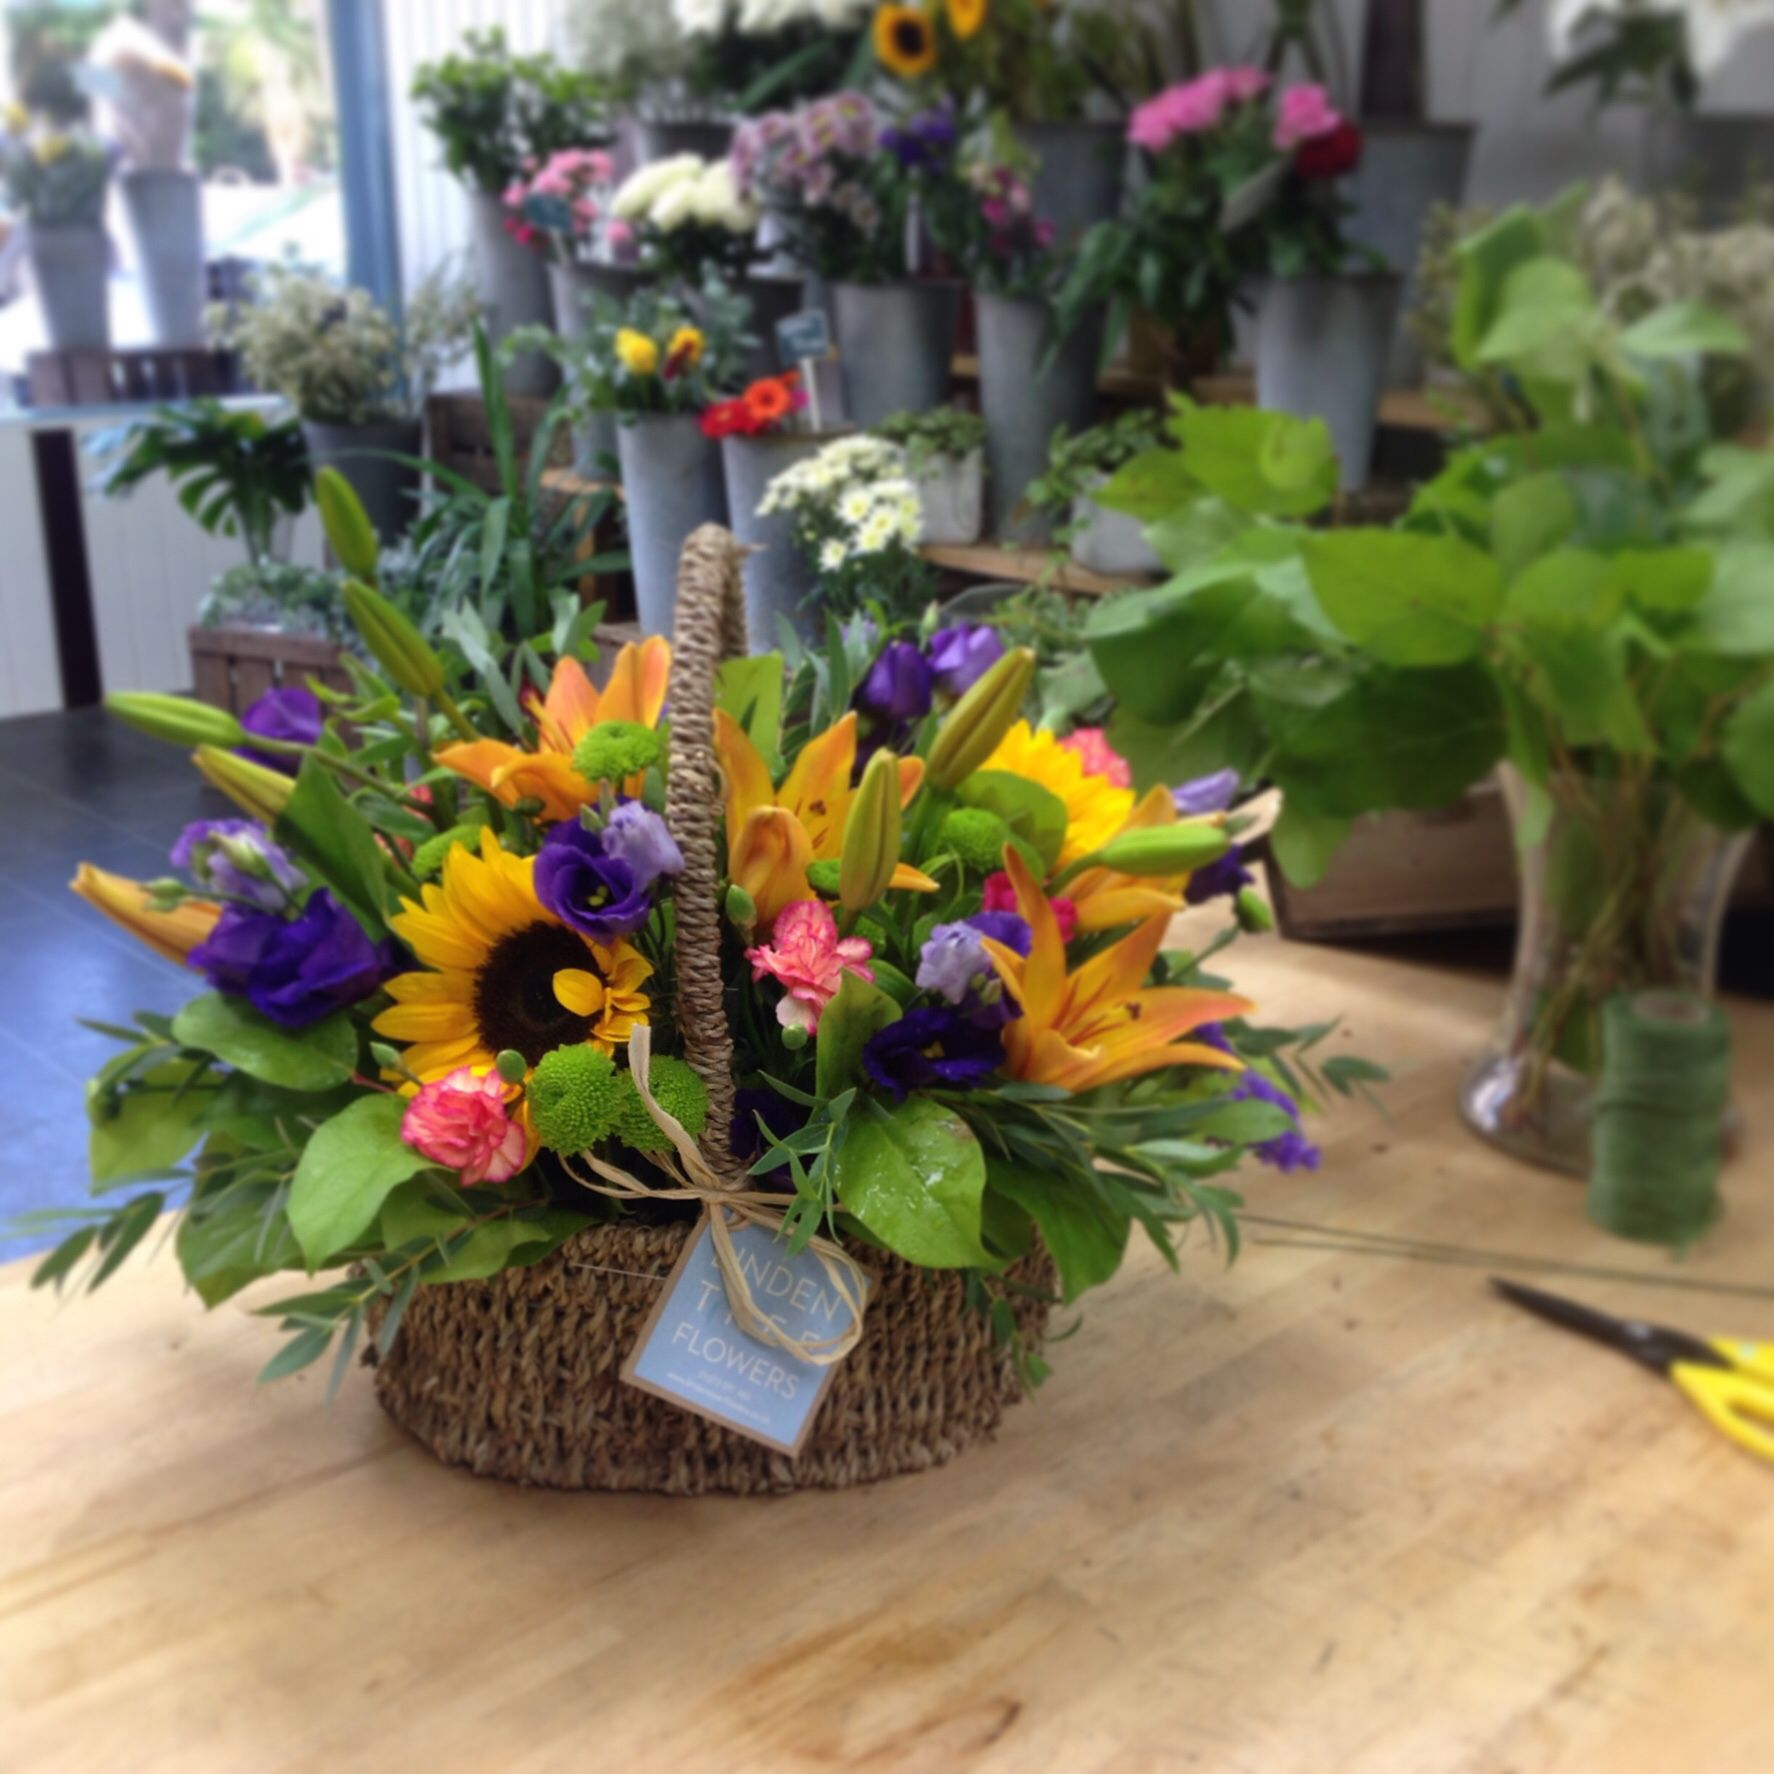 A fabulously colourful and vibrant basket arrangement including